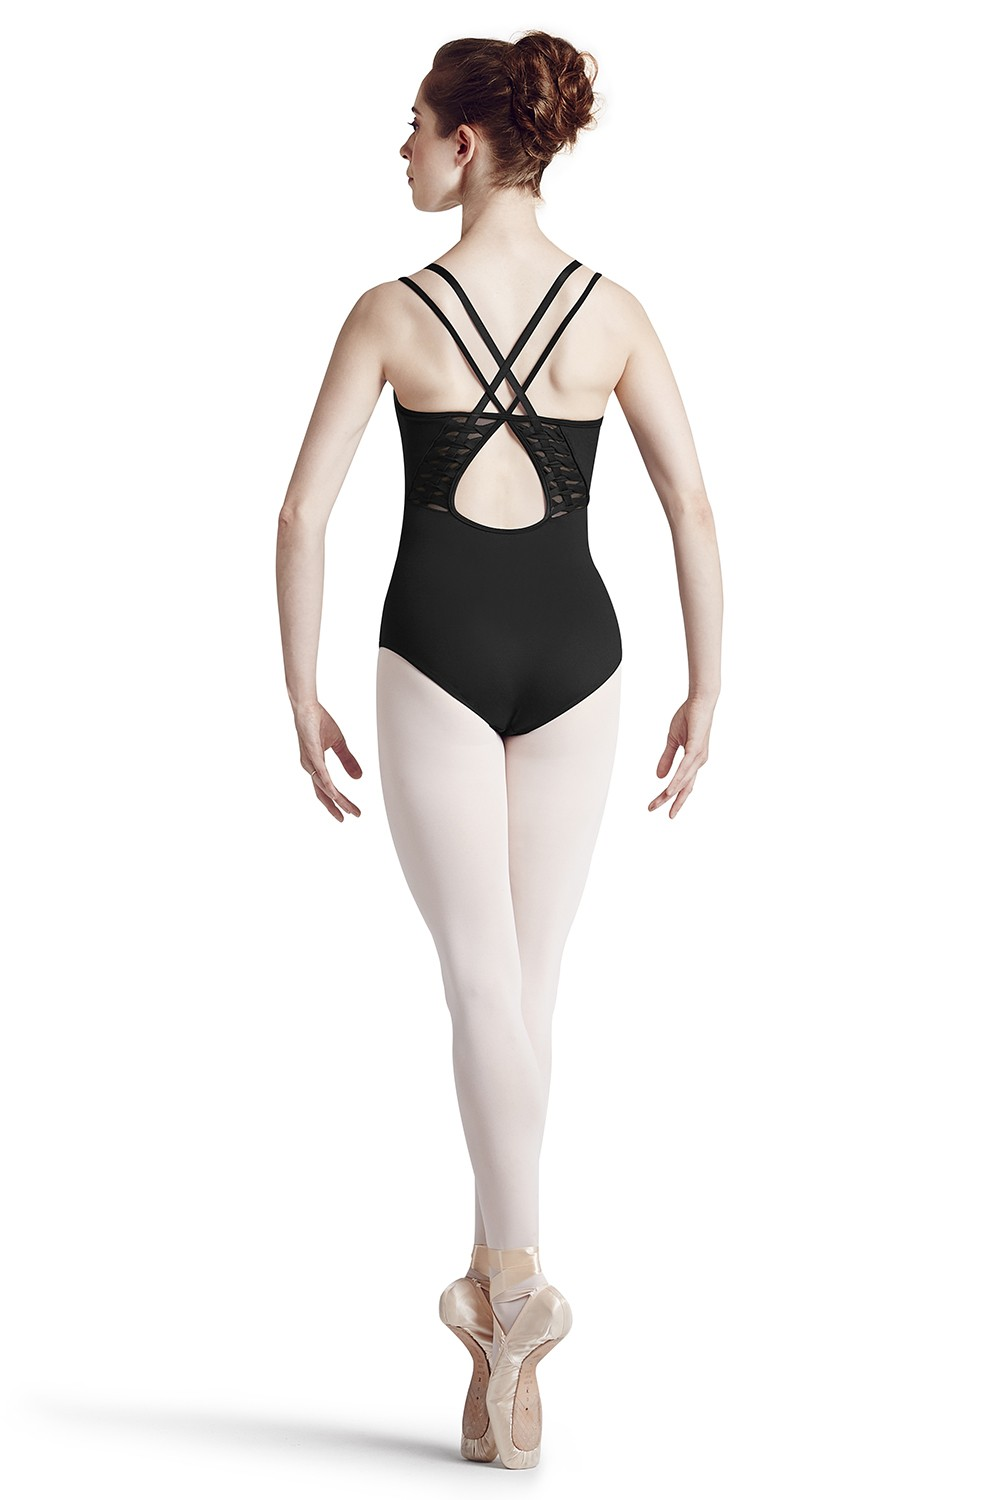 Ambryn Women's Dance Leotards